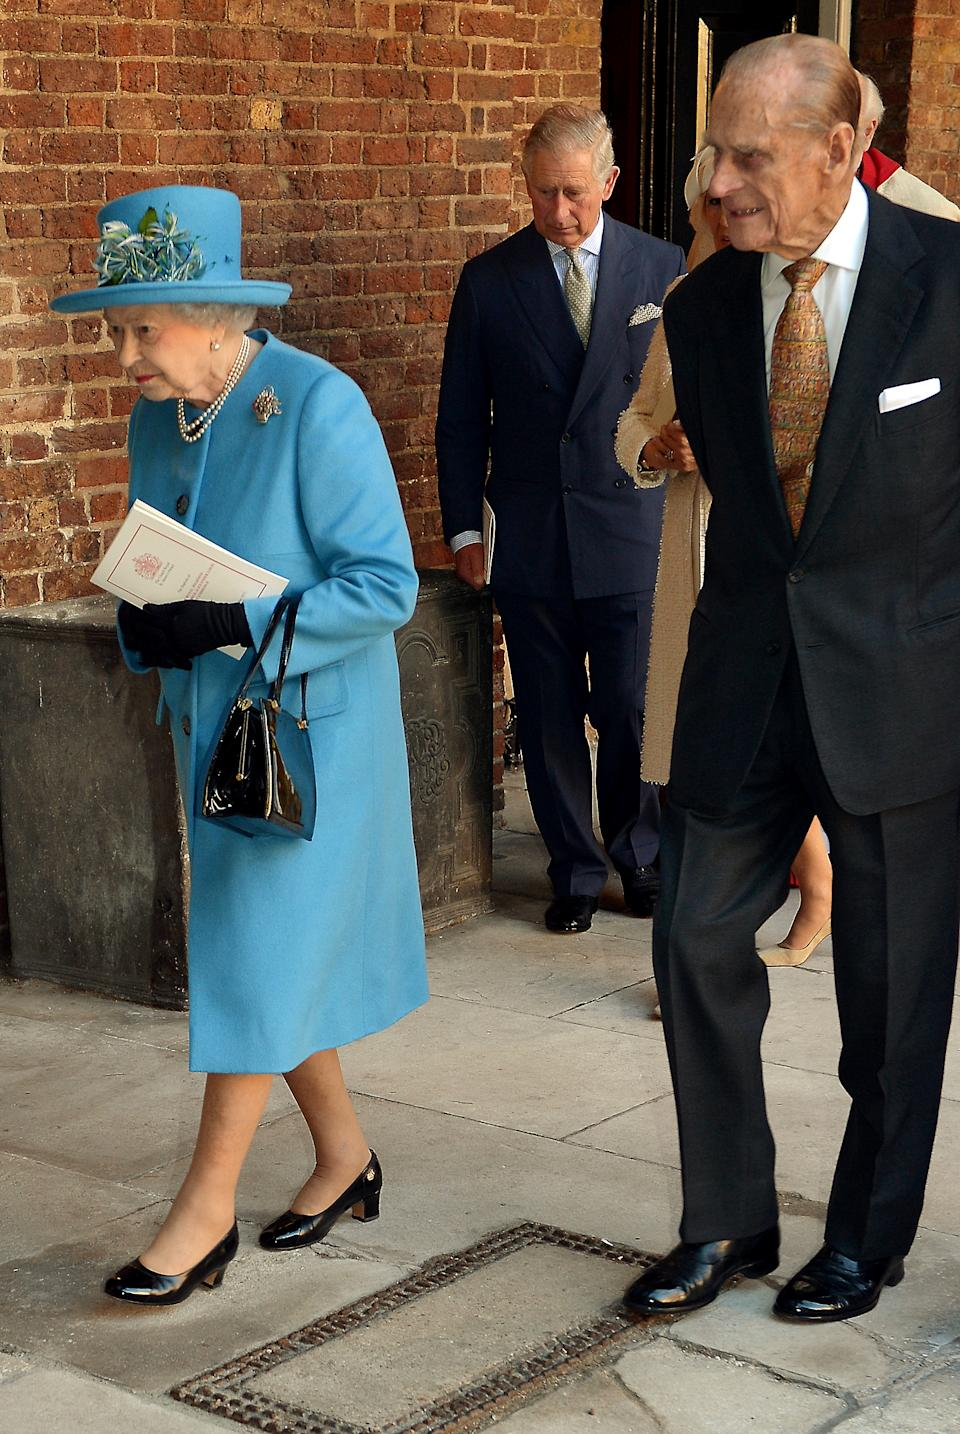 Prince Philip and the Queen are pictured at Prince George's christening in 2013. [Photo: Getty Images]